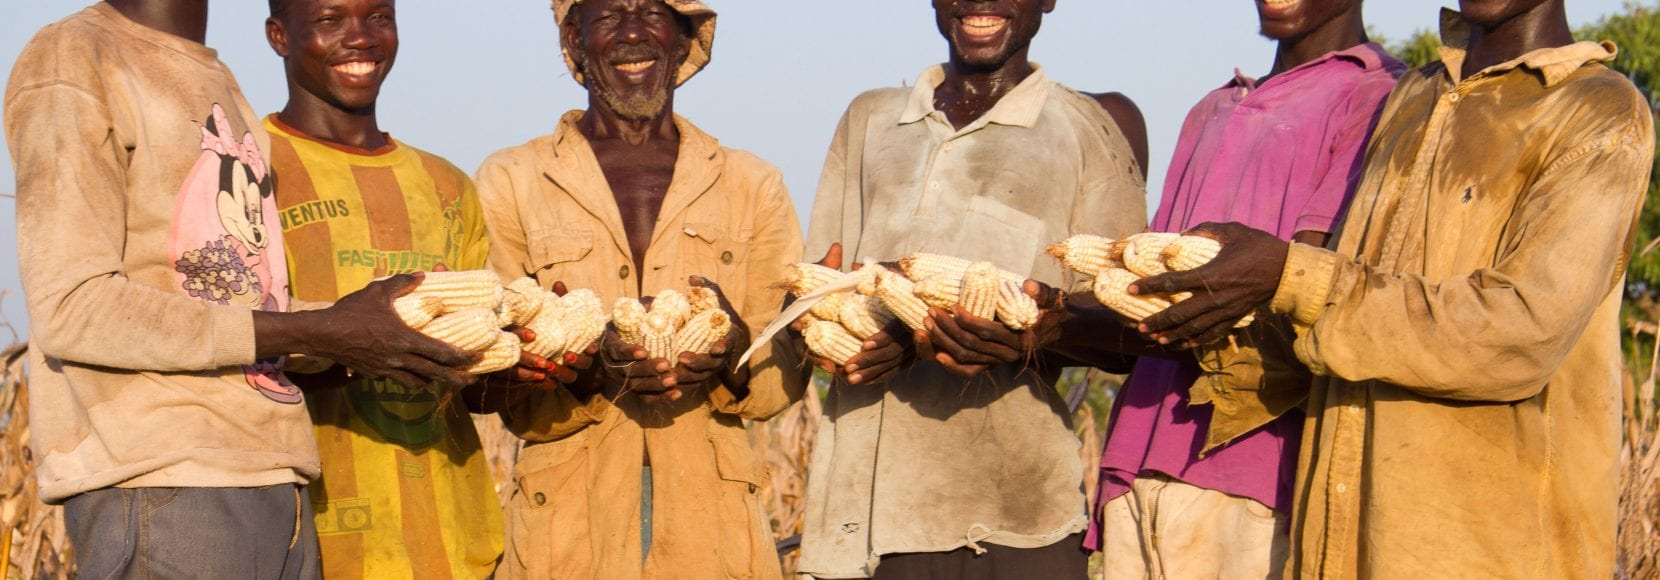 Group of farmers smiling holding corn crops